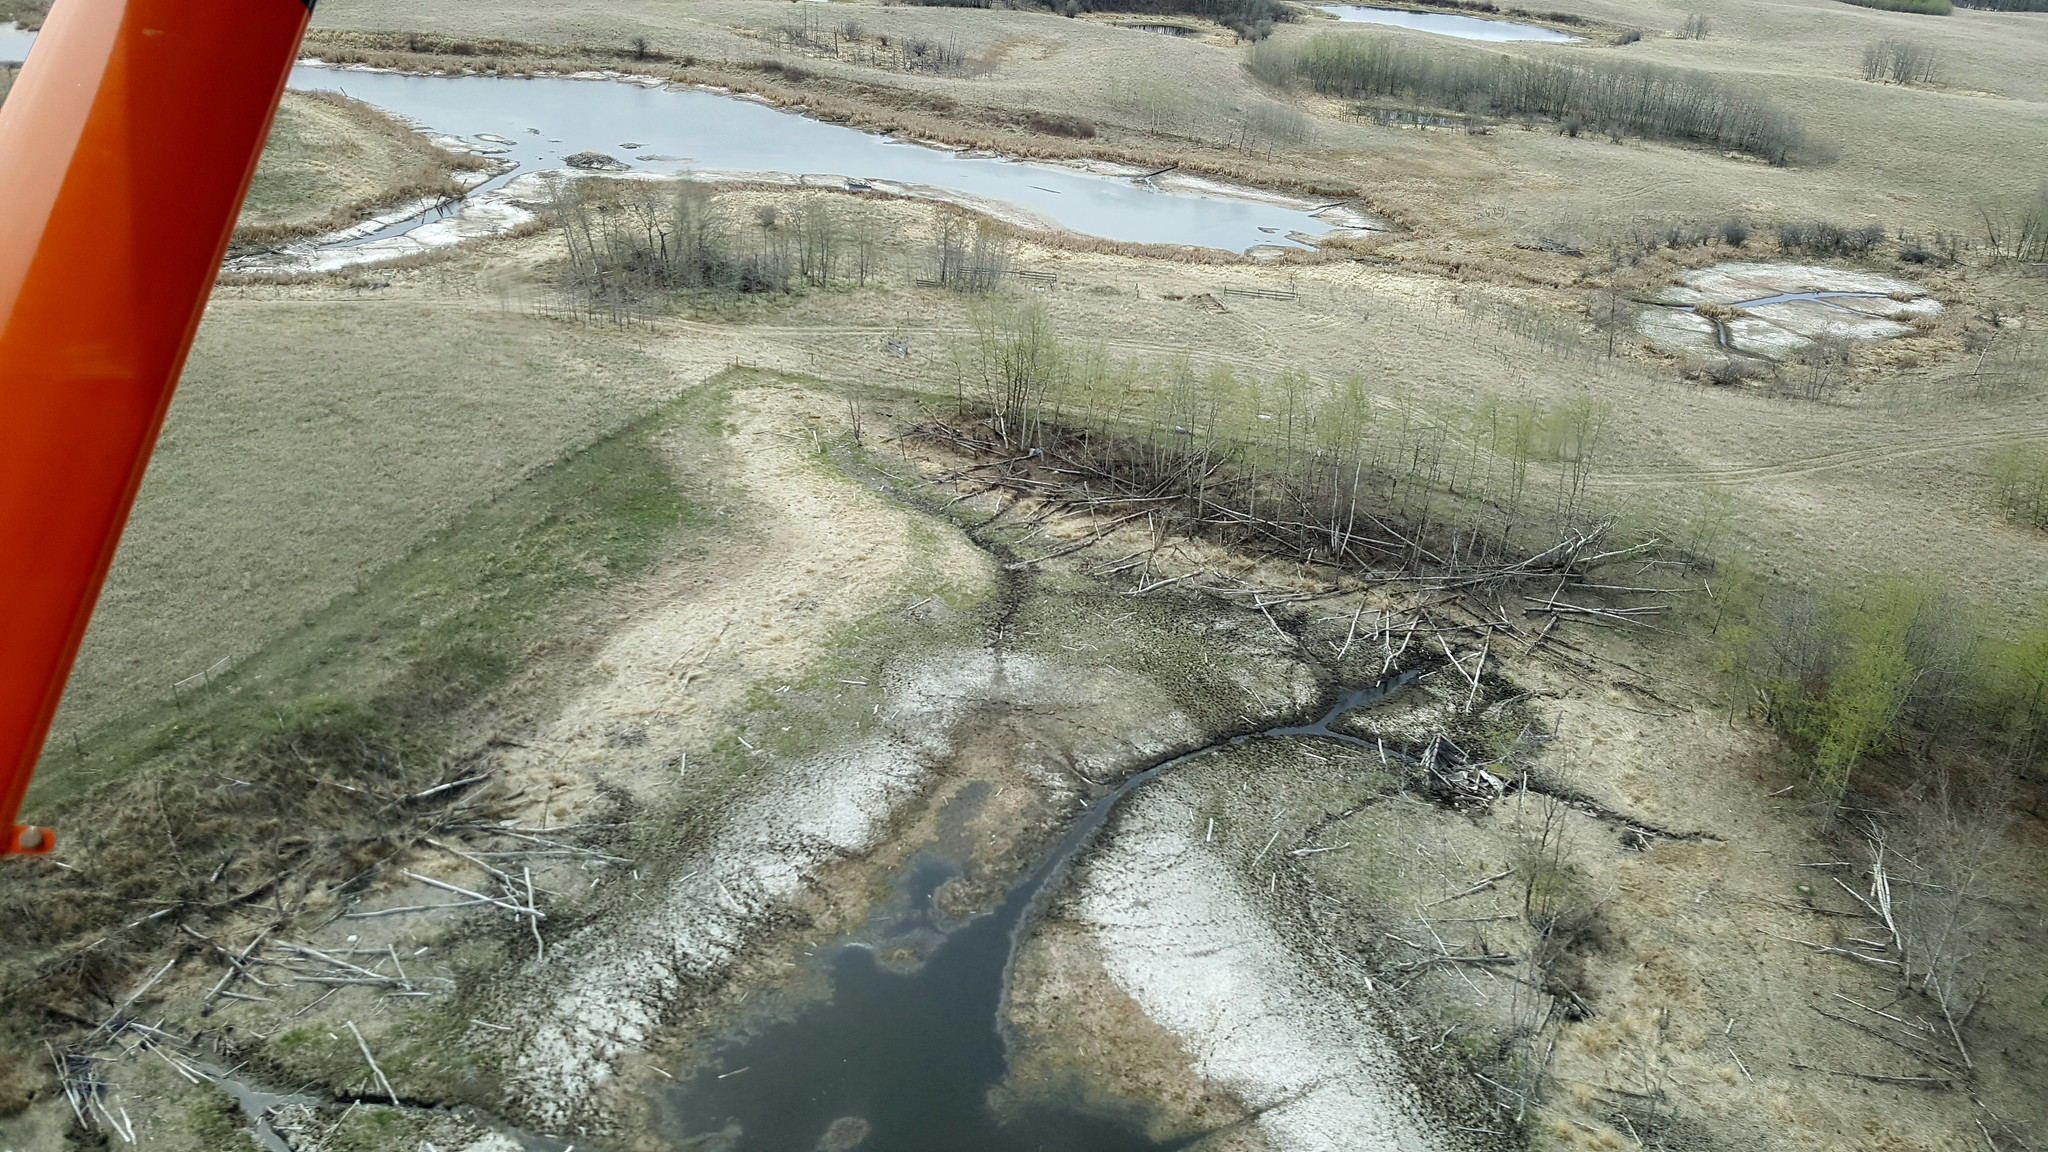 Parkland wetlands are looking dry near Seer and Day Bird Lake, SK. Photo Credit: Jeff Drahota, USFWS